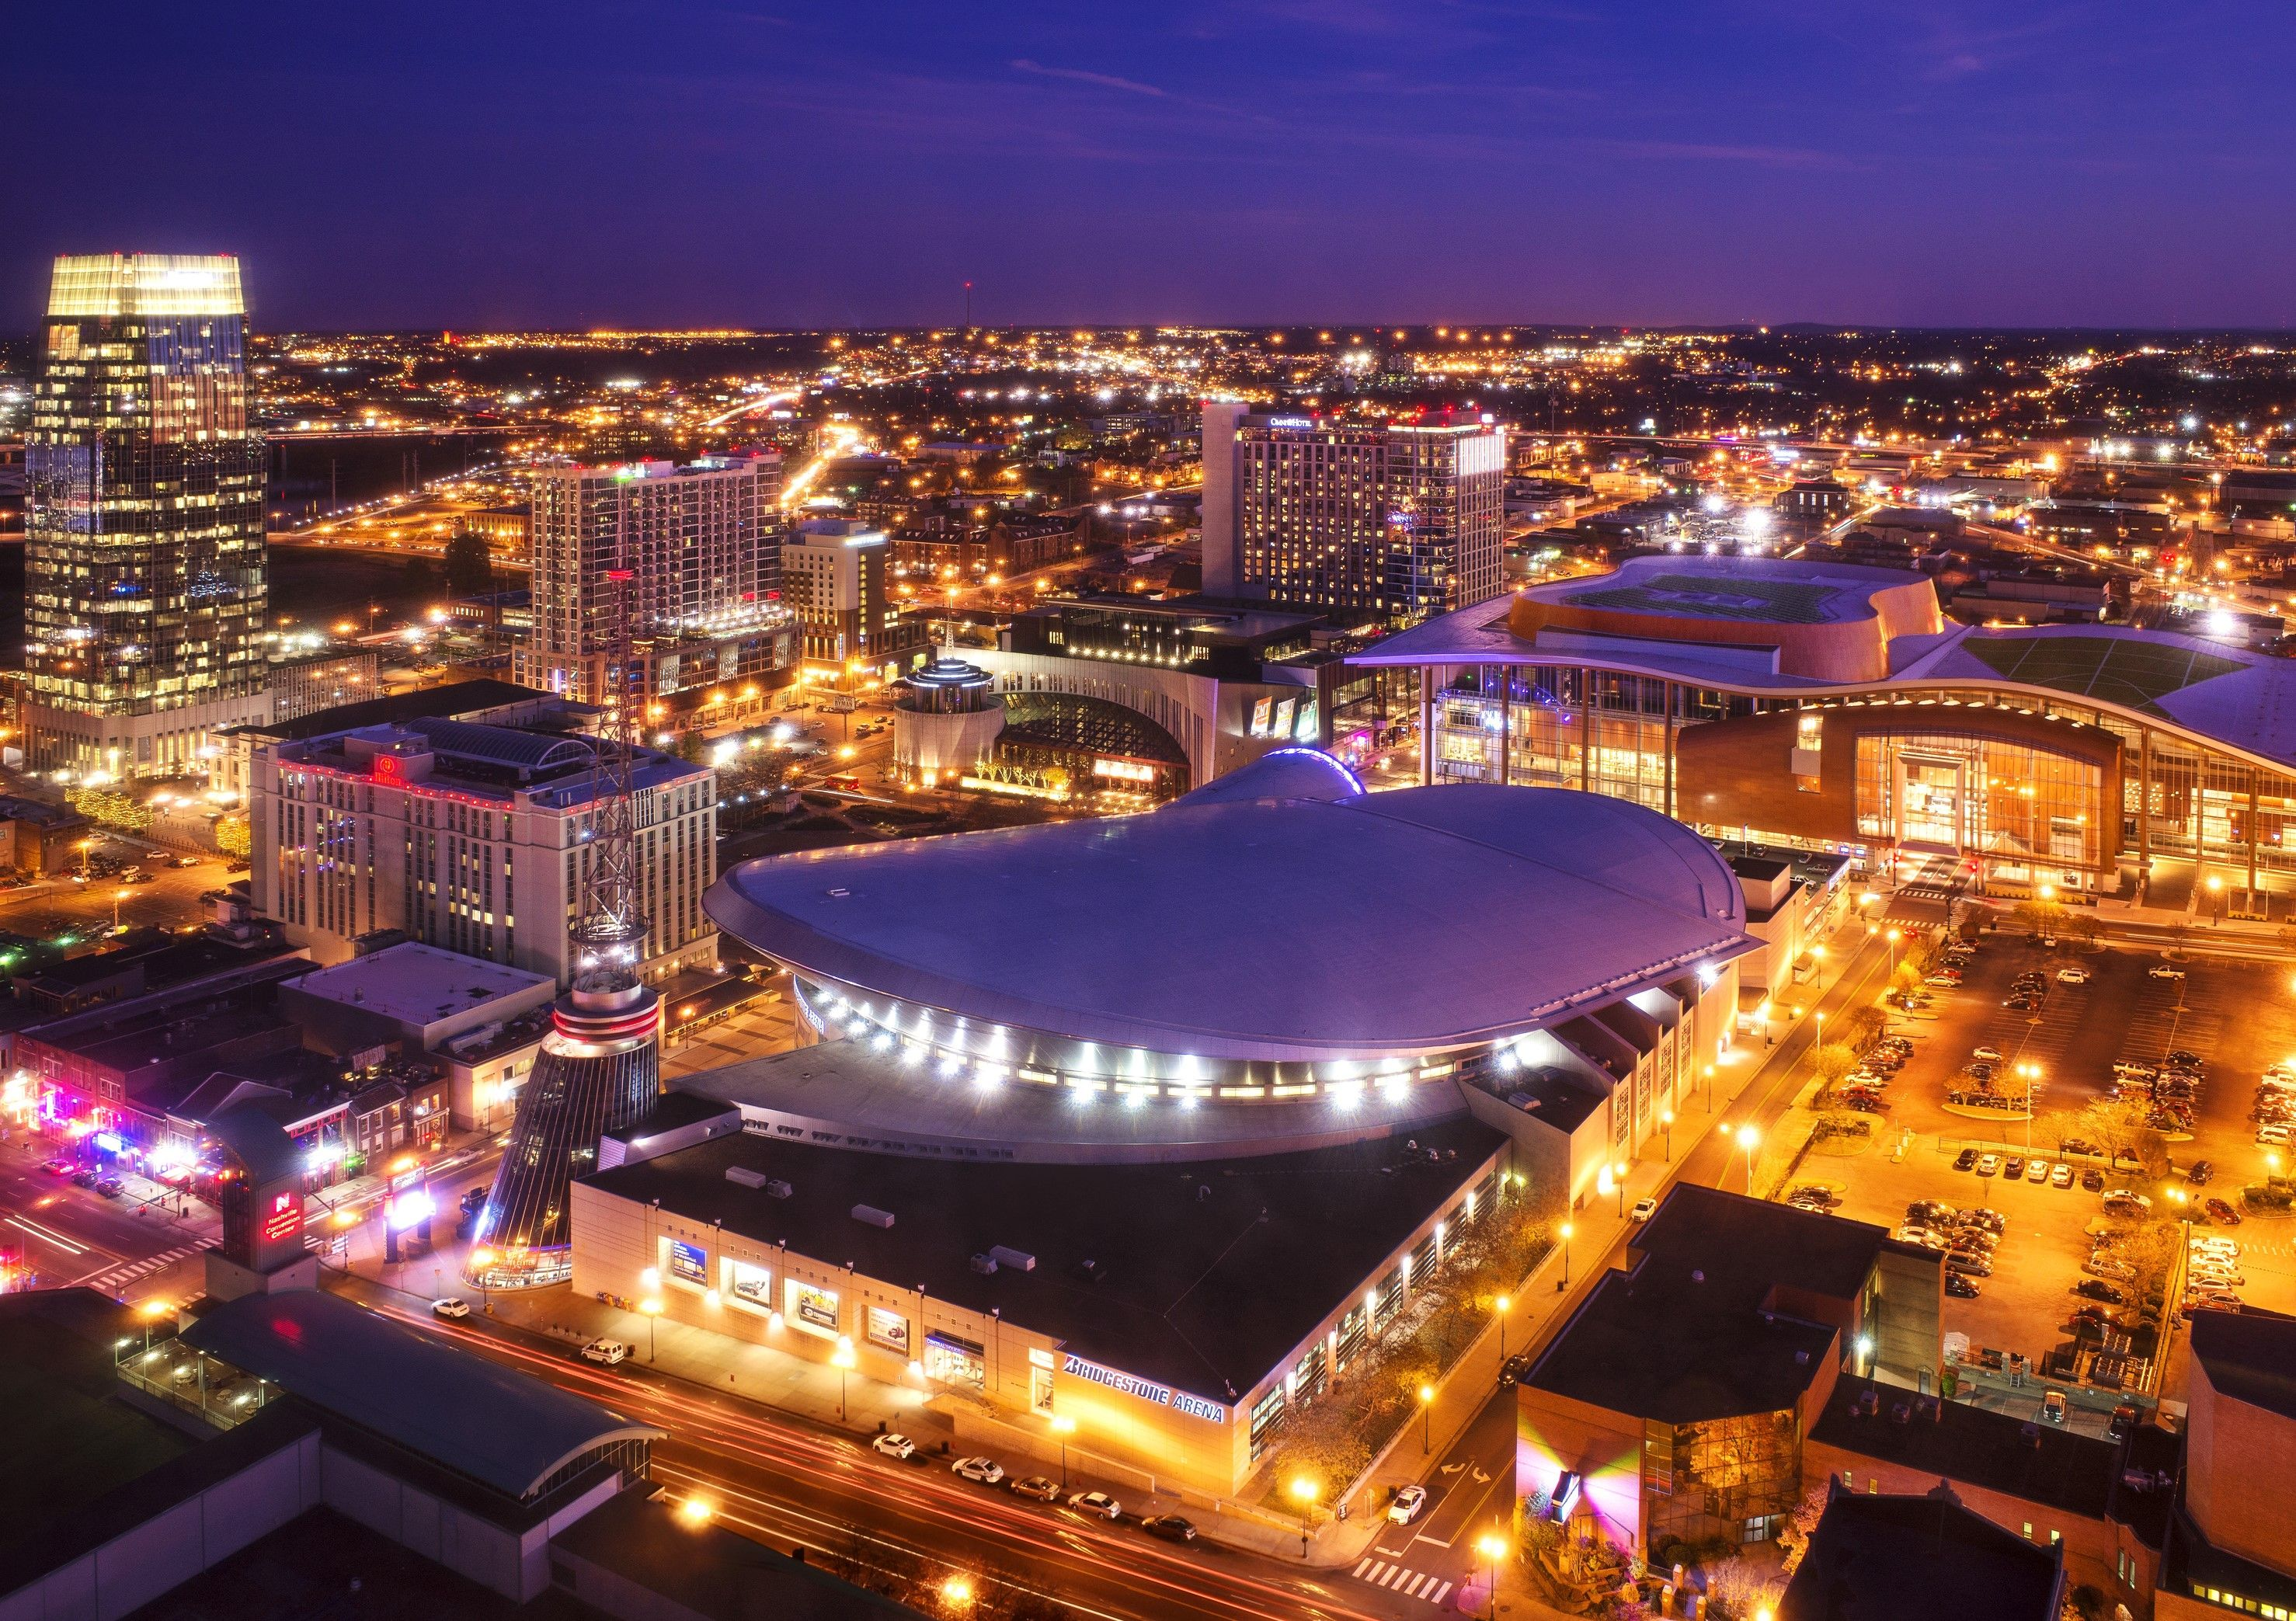 Bridgestone Arena And Music City Center Downtown Nashville Tennessee Usa Music City Mansions Sydney Opera House